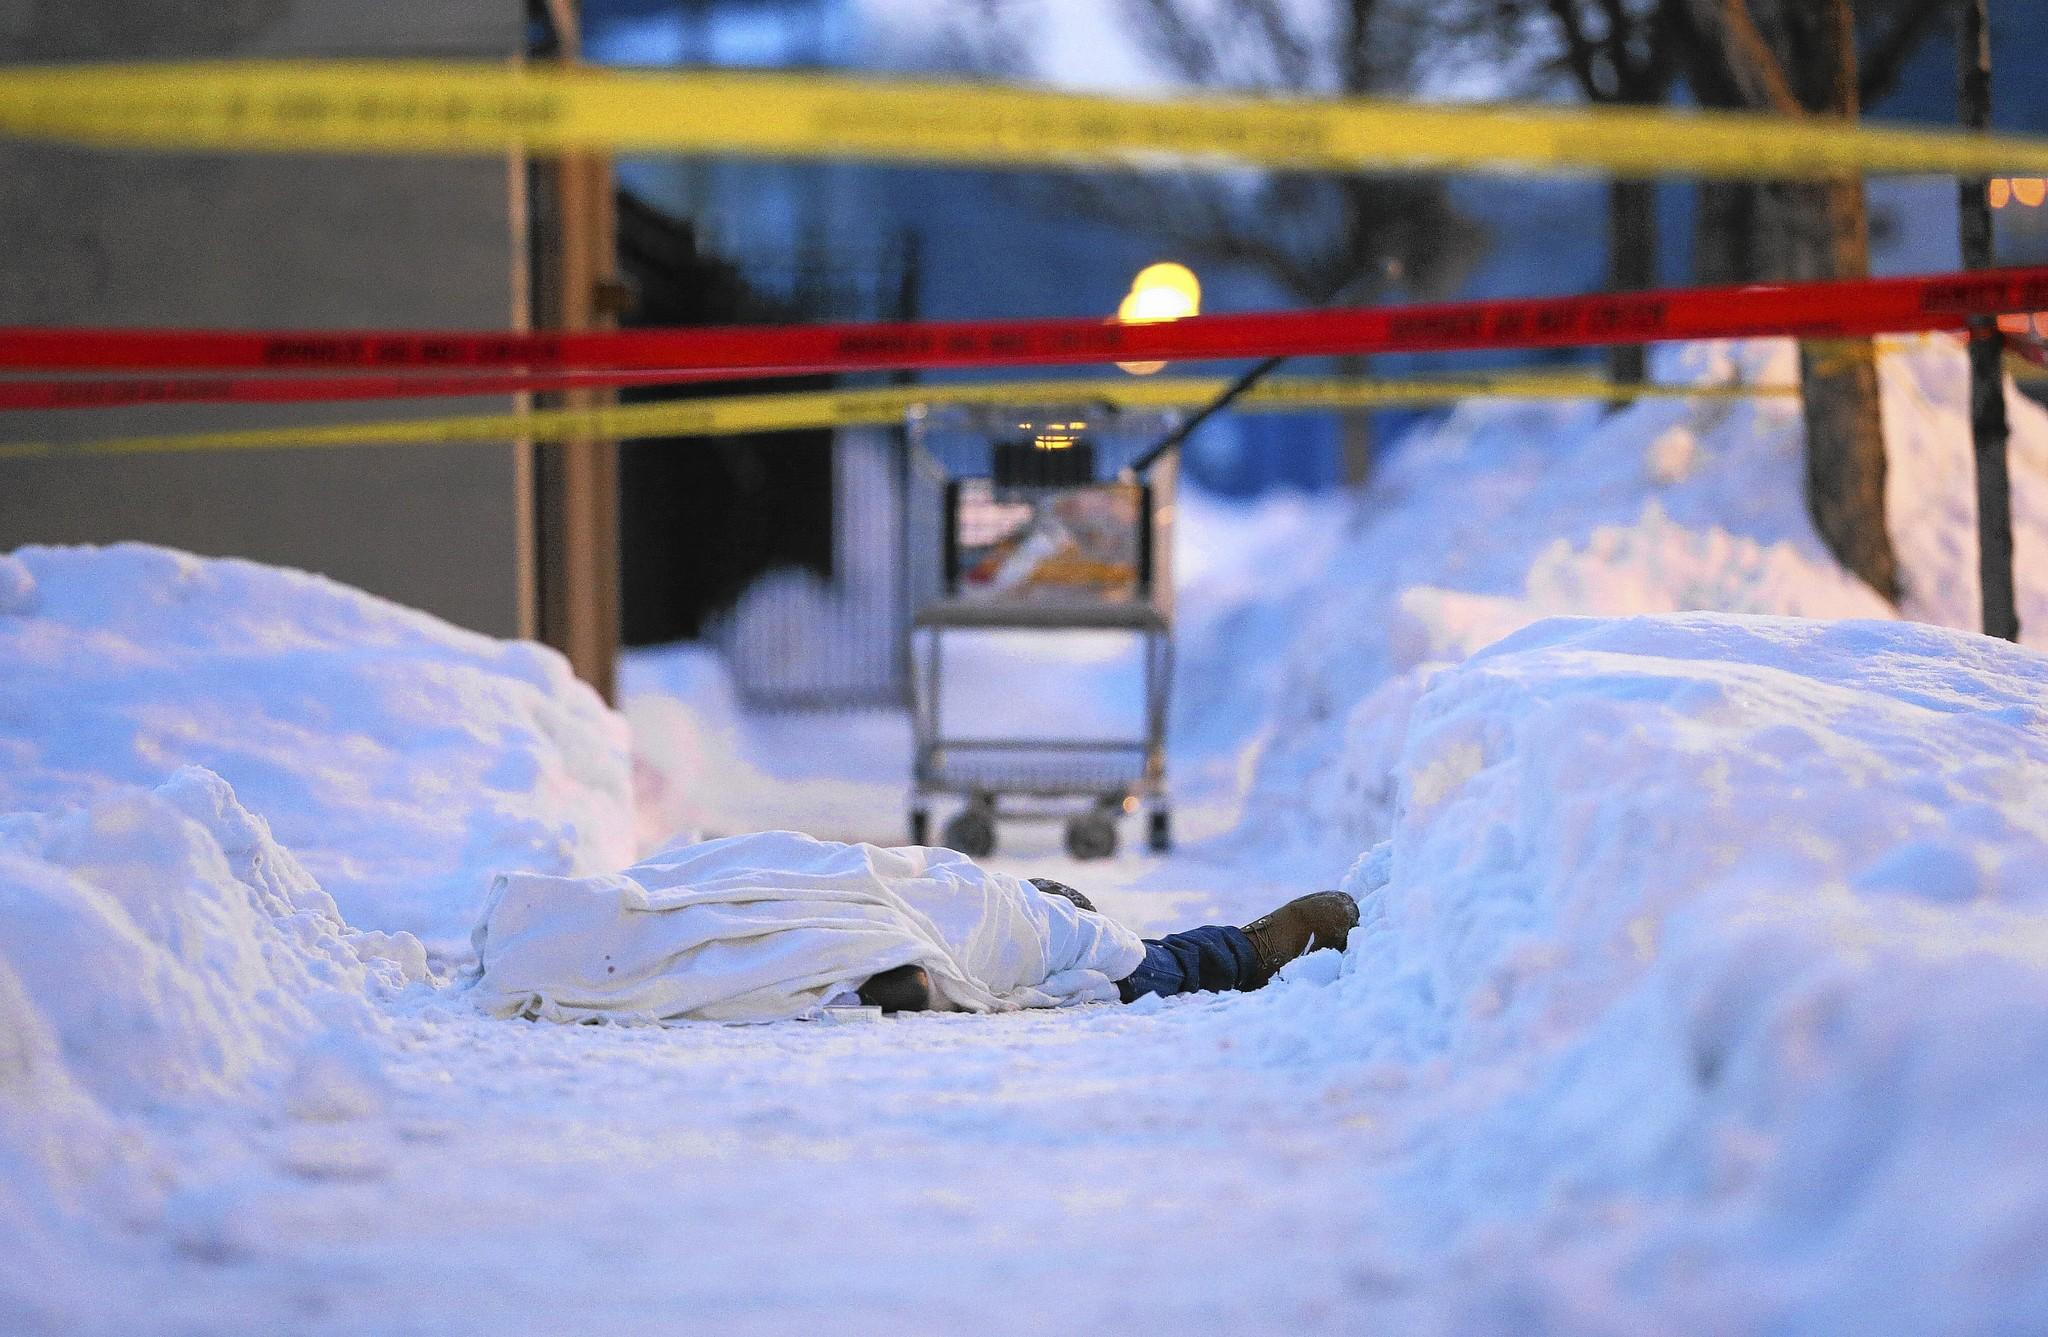 The body of a slaying victim lies on a sidewalk Feb. 9 in the 1300 block of West Hastings Avenue in Chicago.